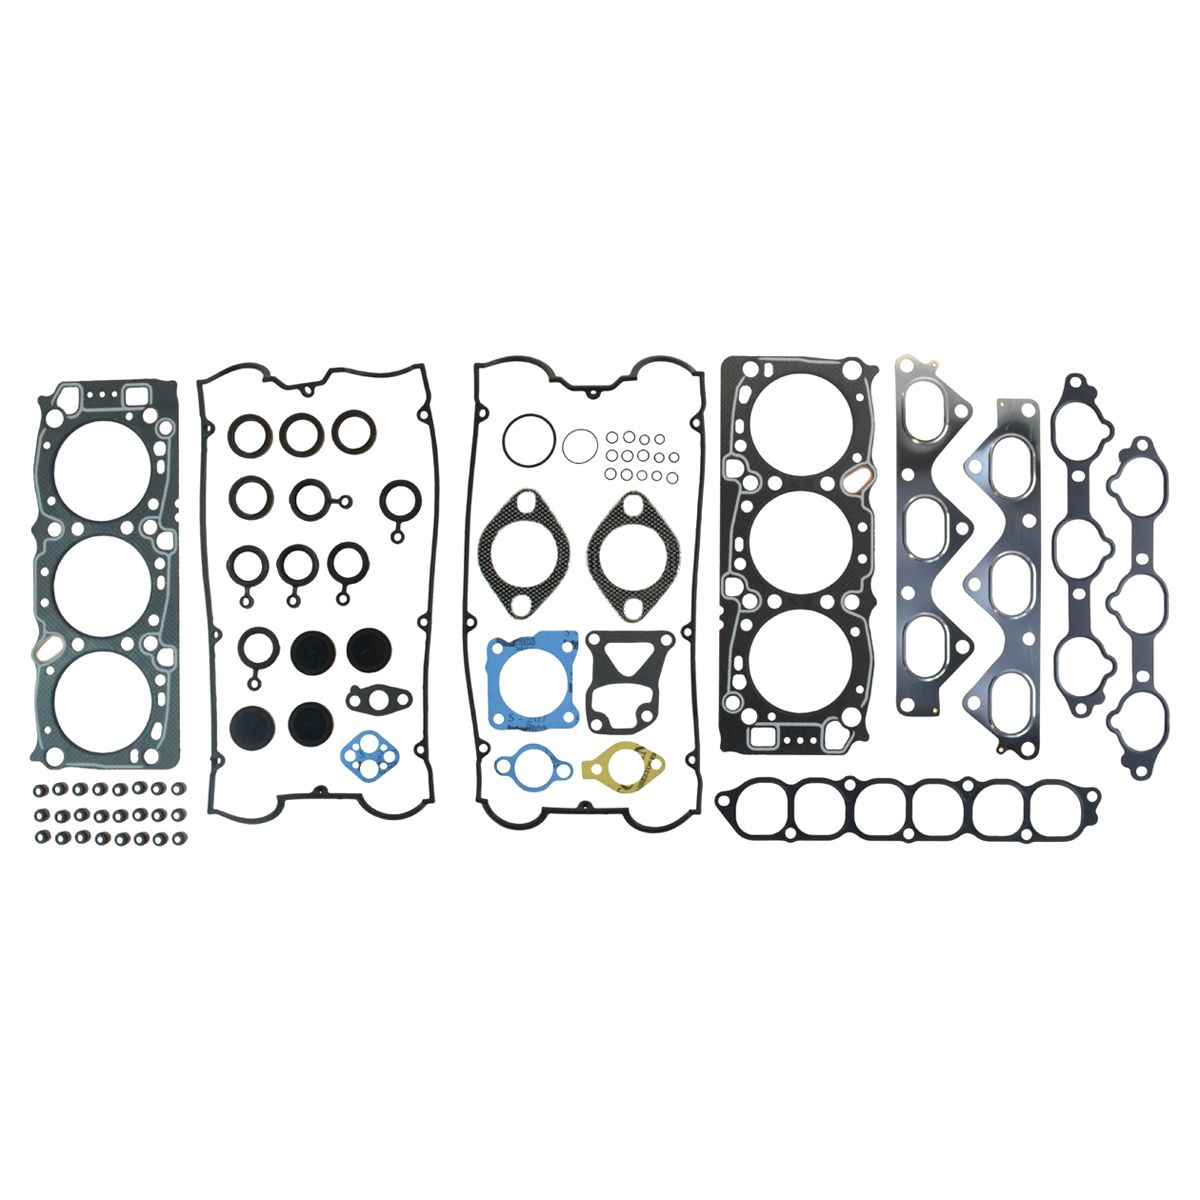 Engine Head Gasket Kit Set For Mitsubishi Gt Diamante Dodge Stealth 3 0l V6